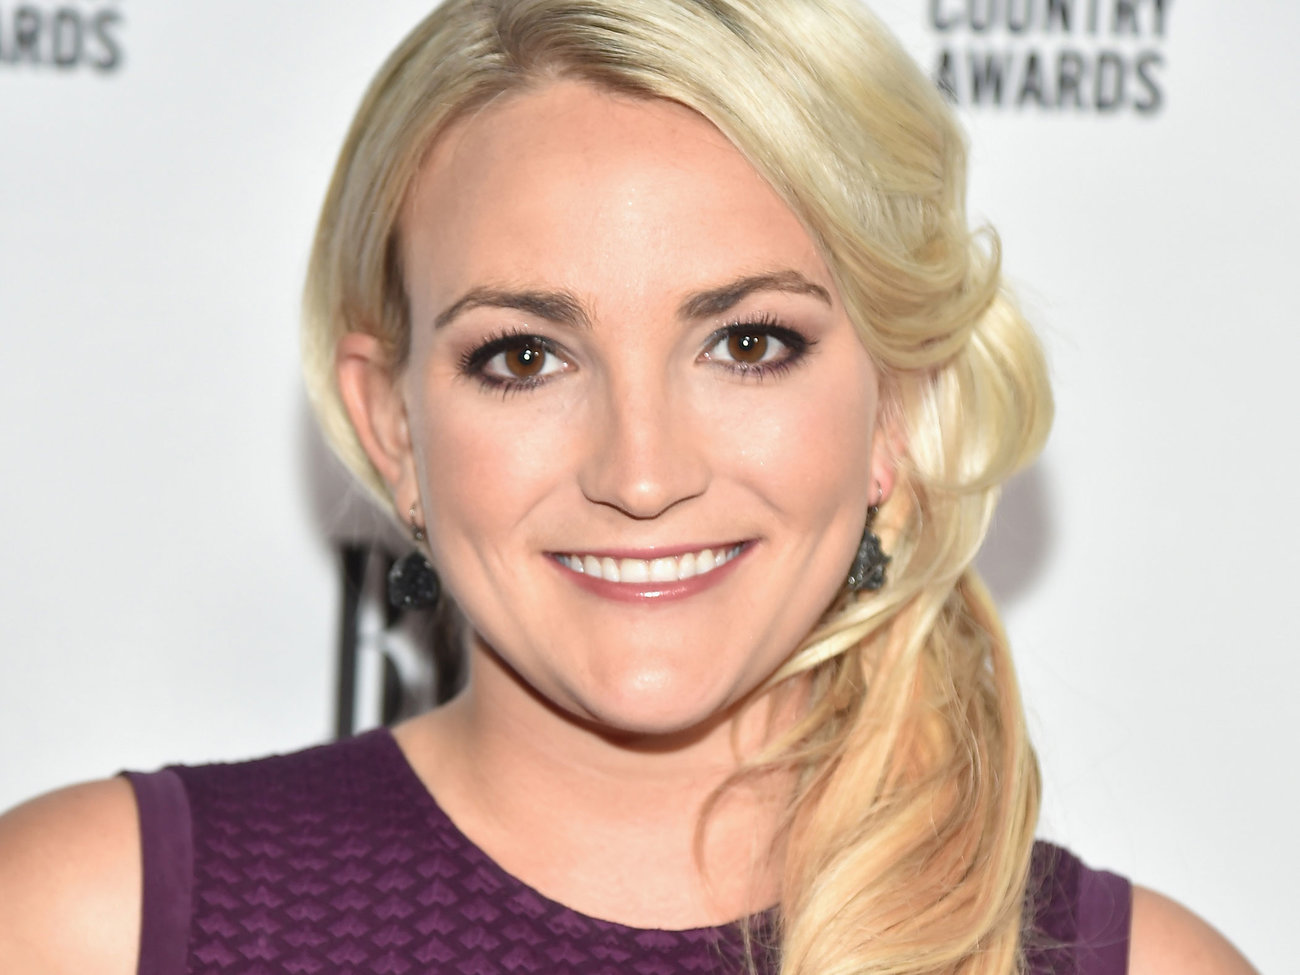 Jamie Lynn Spears Welcomes Baby Girl - What's Her Name?